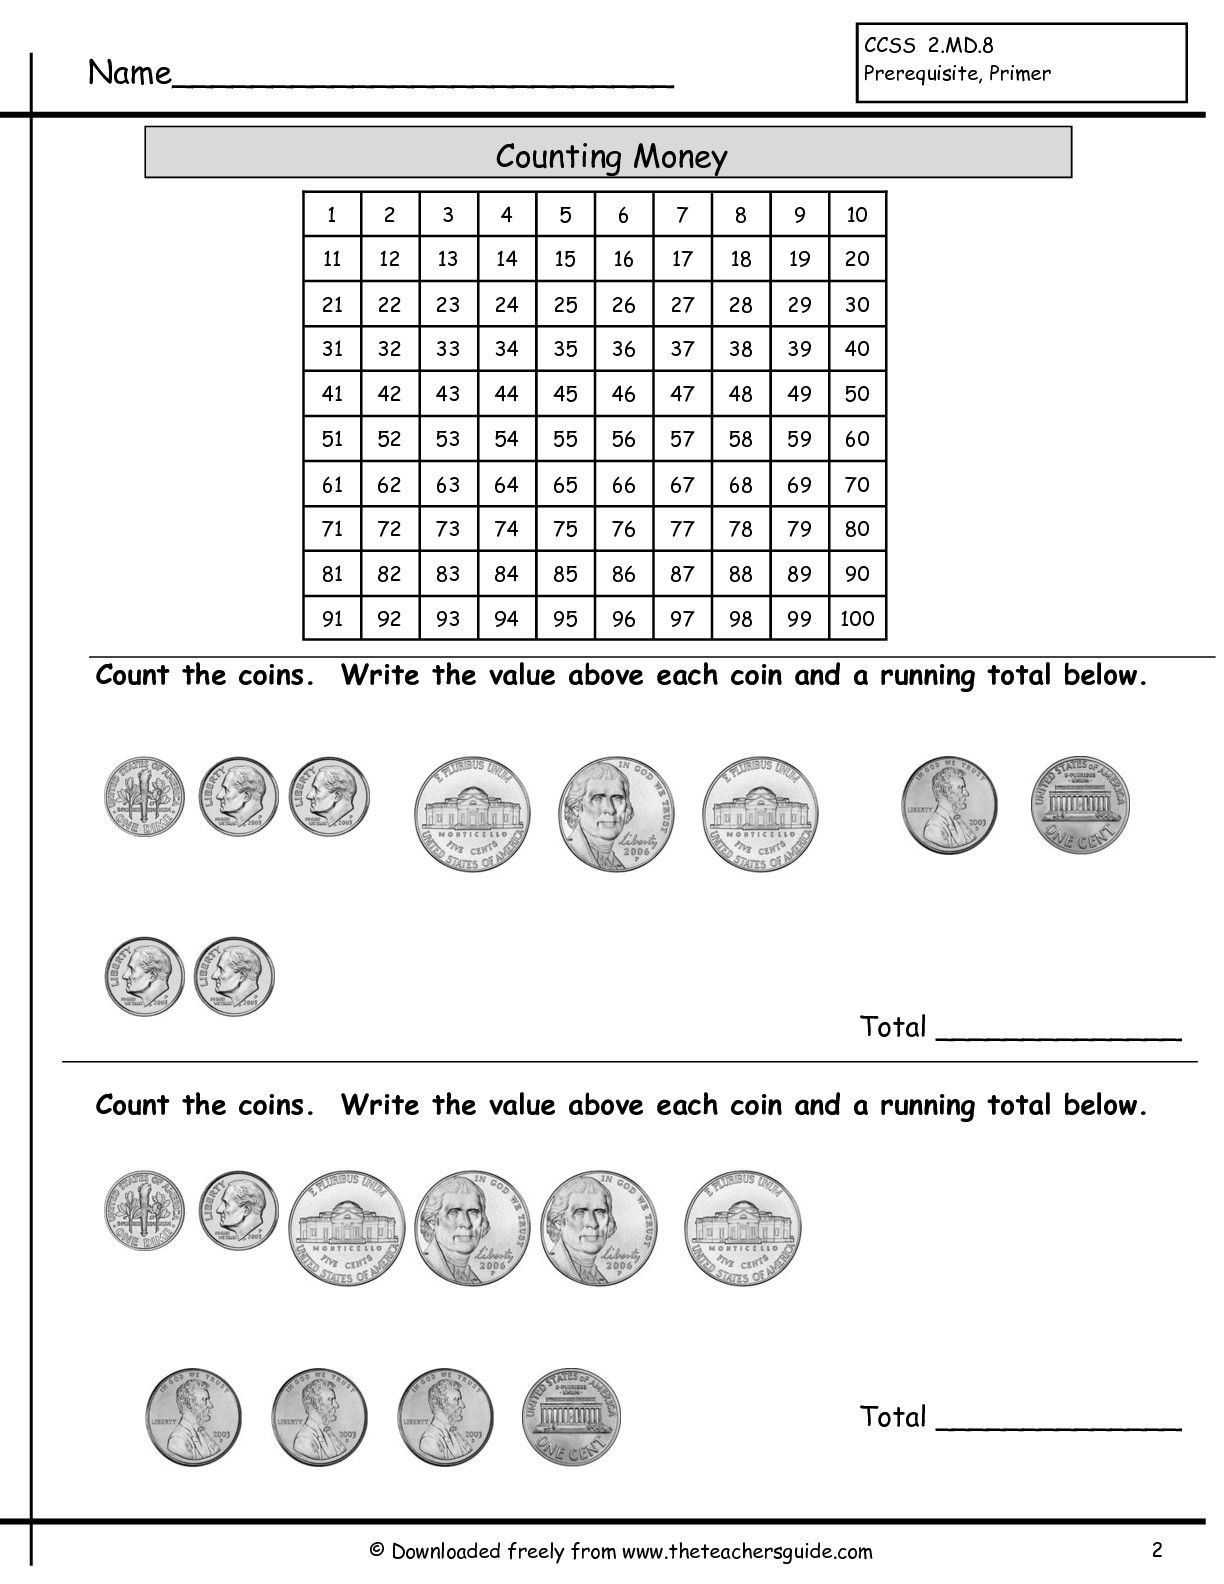 Counting Coins Worksheets First Grade Counting Coins Worksheet